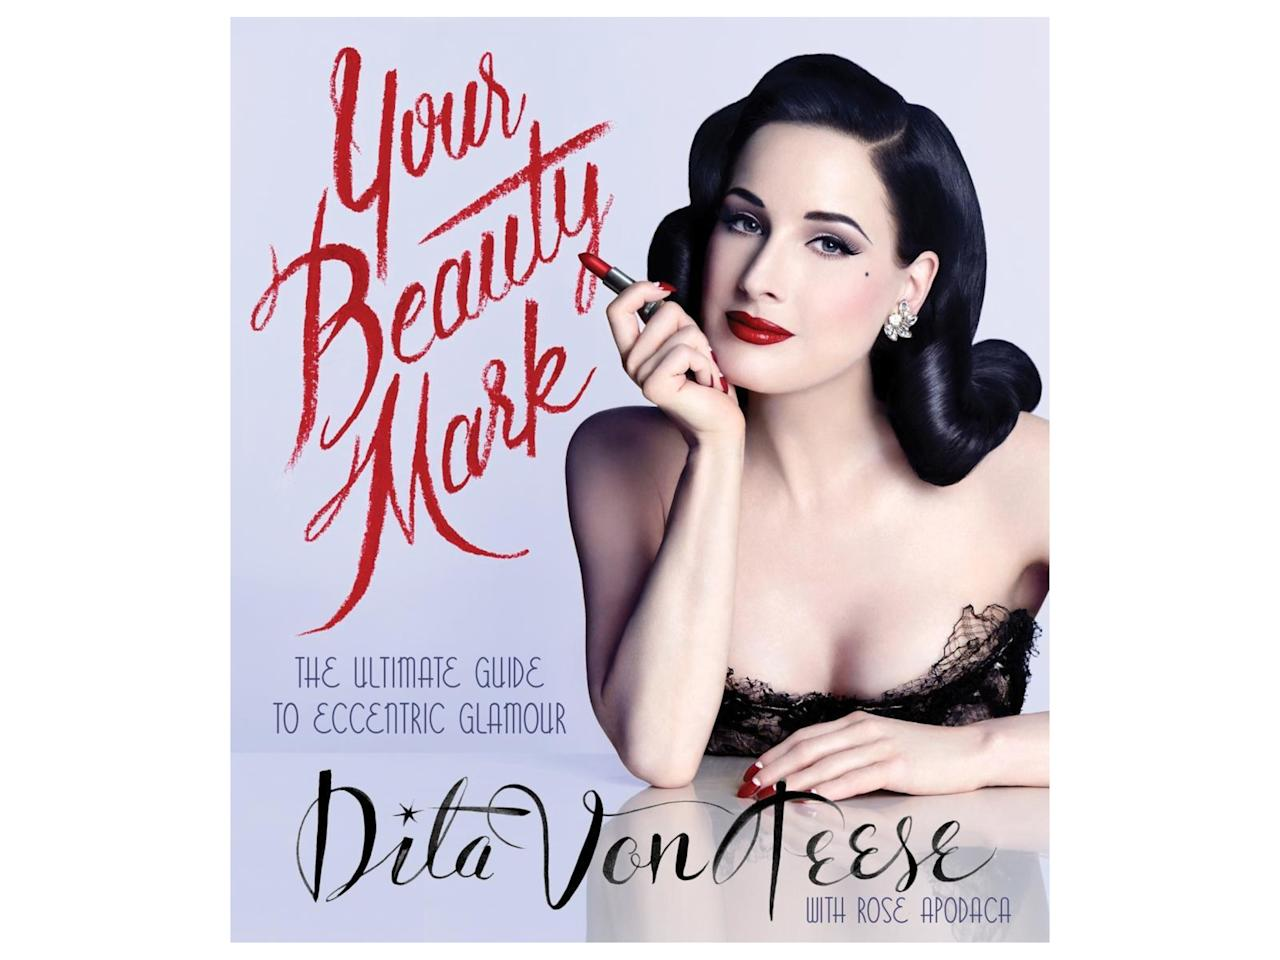 """<p><em>Your Beauty Mark: The Ultimate Guide to Eccentric Glamour book</em></p><p>Buy it <a rel=""""nofollow"""" href=""""https://www.amazon.com/Your-Beauty-Mark-Ultimate-Eccentric/dp/0060722711?ie=UTF8&camp=1789&creative=9325&linkCode=as2&creativeASIN=0060722711&tag=instycom00-20&ascsubtag=61fc1e711d4d7b44e89ebf55d62bd9c9"""">here</a> for $27.</p>"""